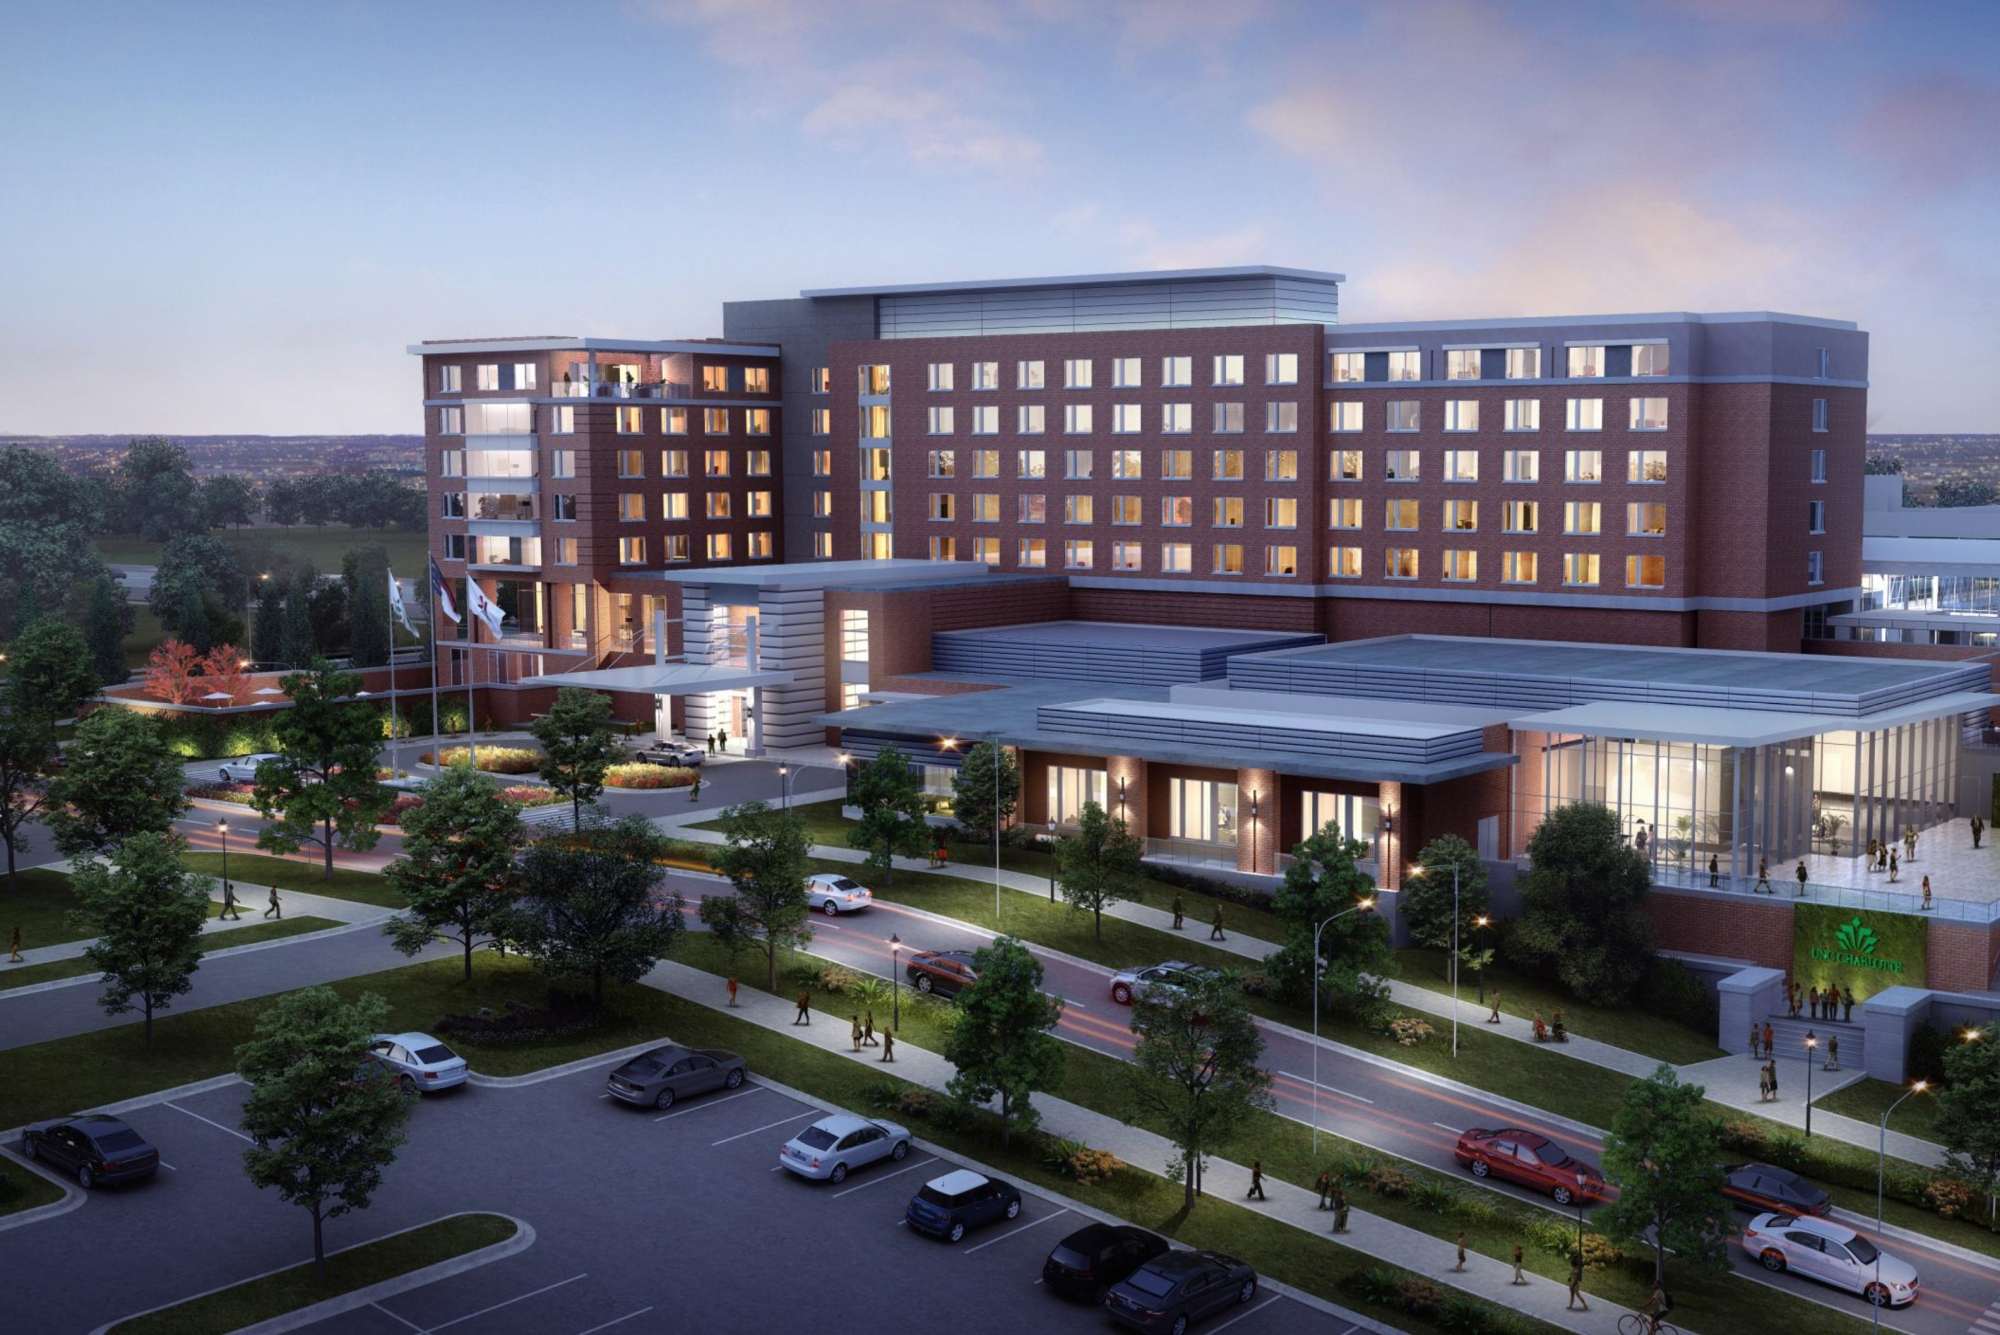 Computer rendering of a new hotel.